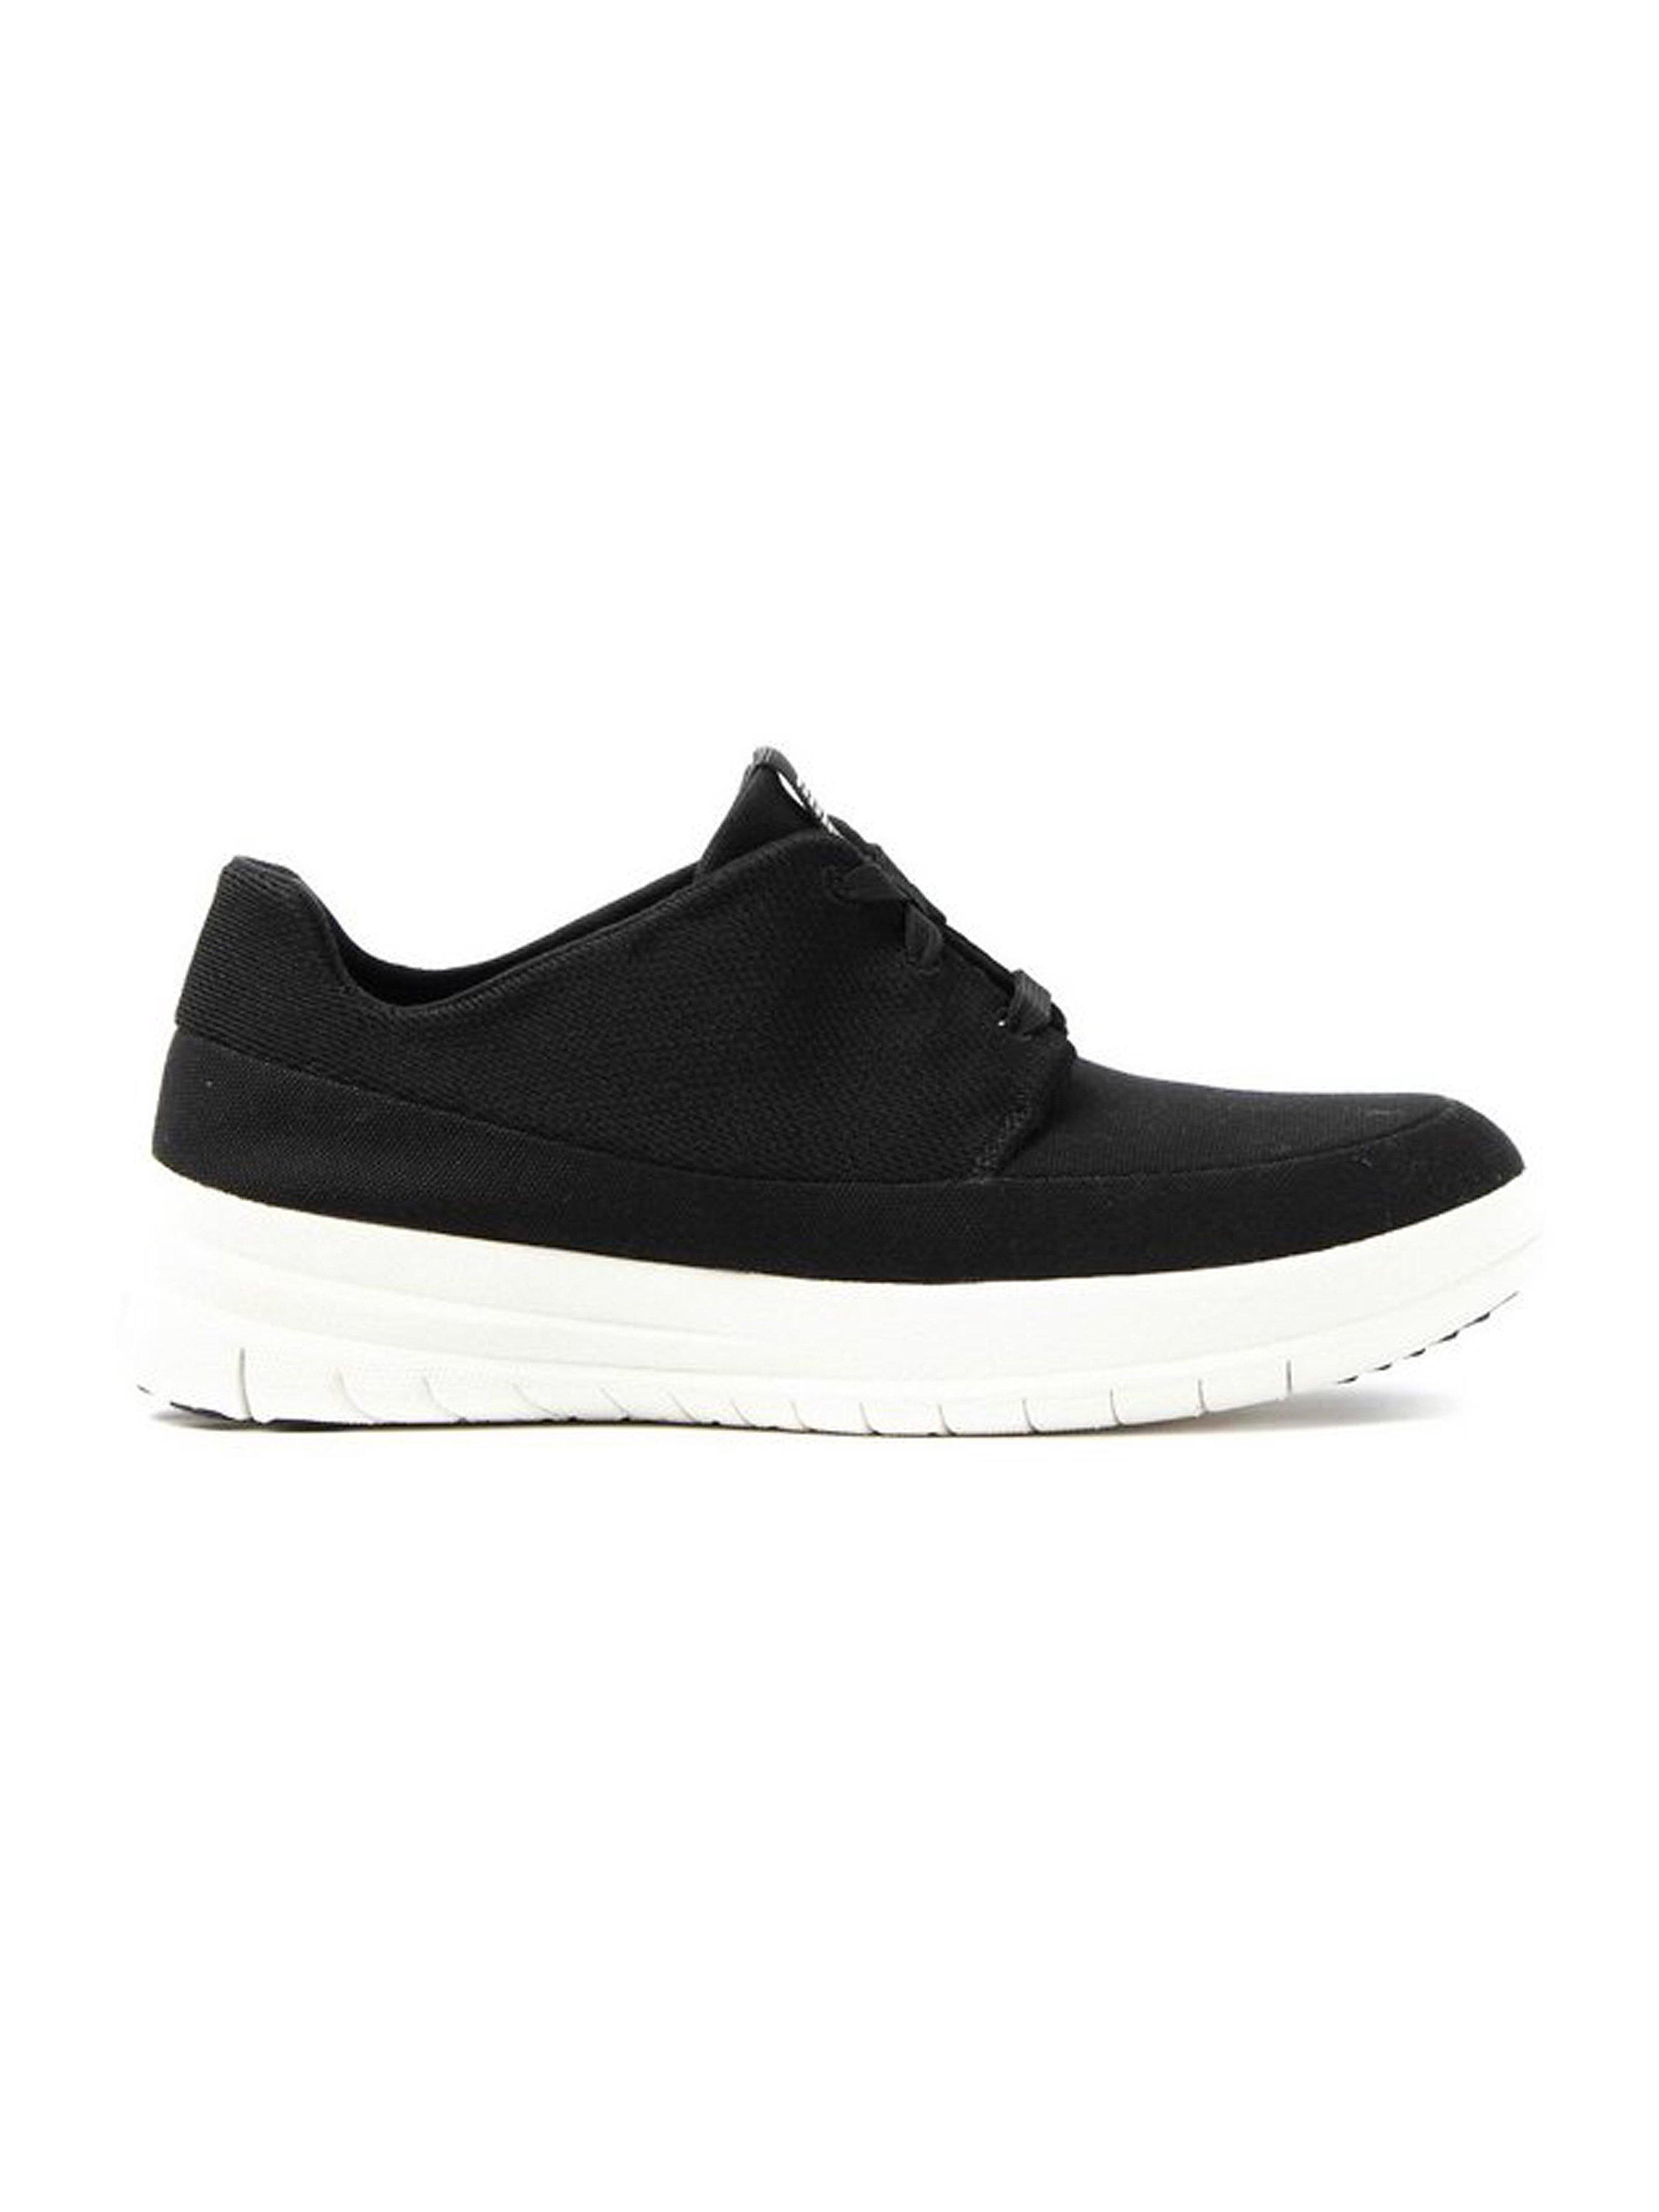 FitFlop Women's Sporty-Pop Softy Trainers - Black